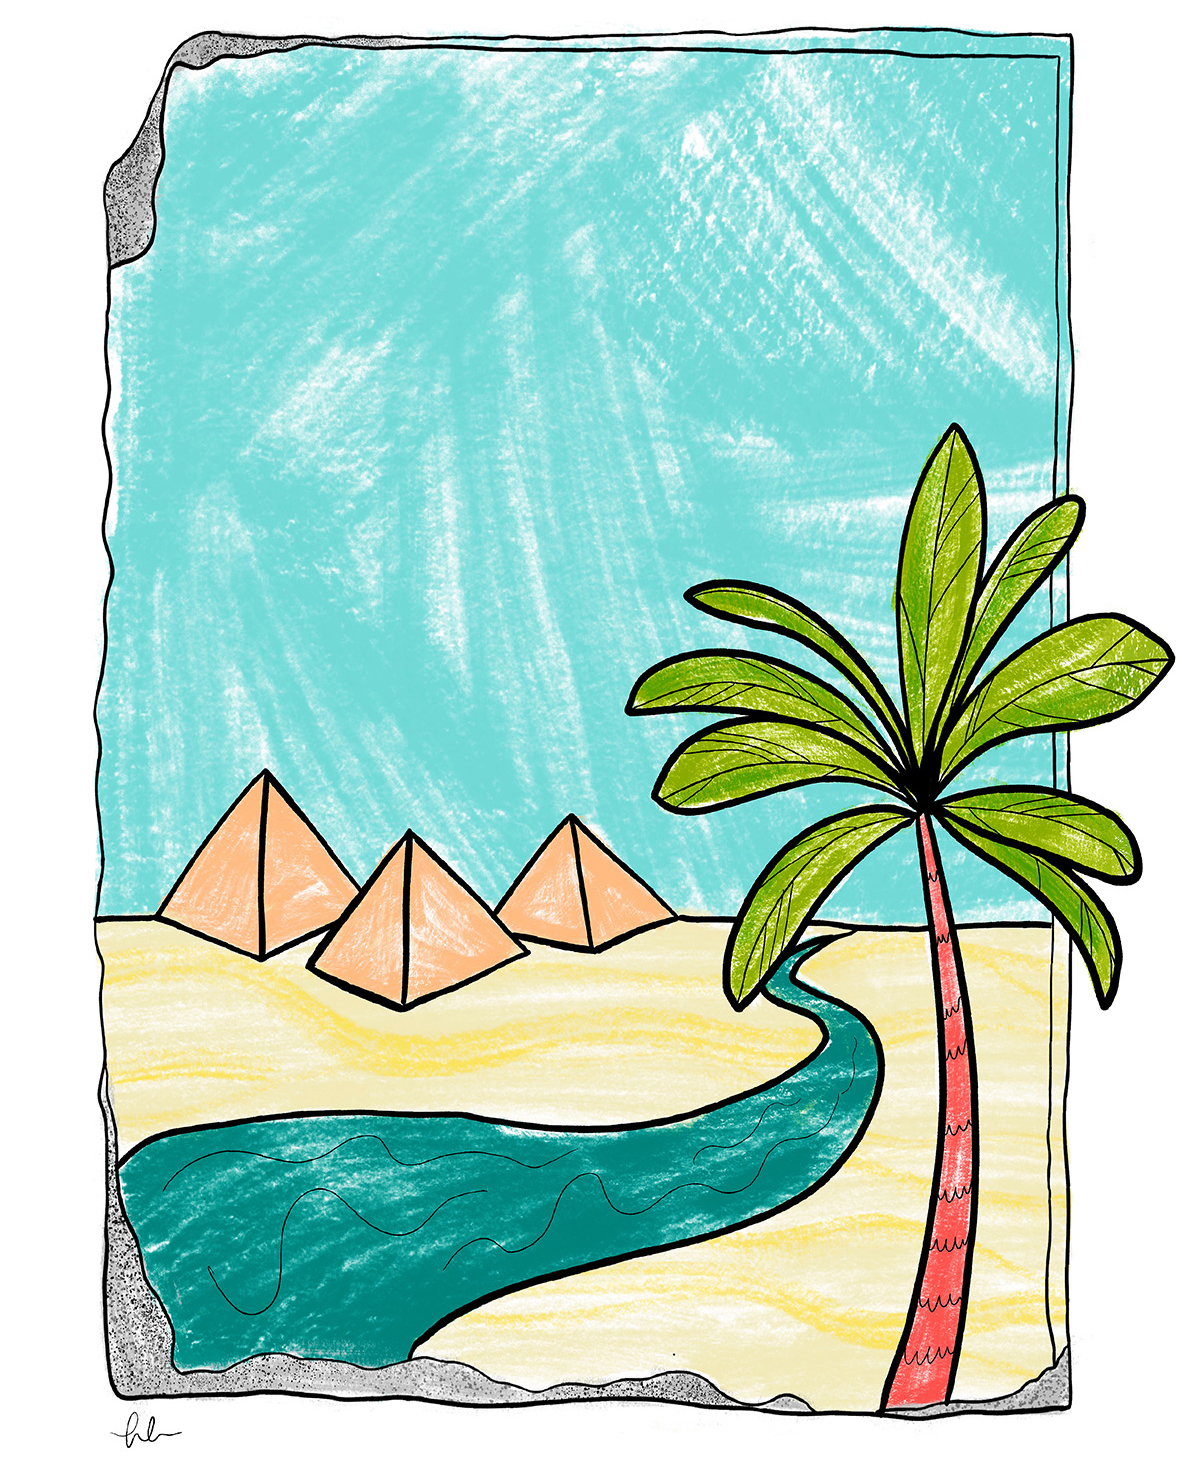 An illustration that looks colored in with crayons, shows a blue sky behind the text, three pyramids below, a little blue river at the bottom of the illustration, and a palm tree at lower right, in the foreground.